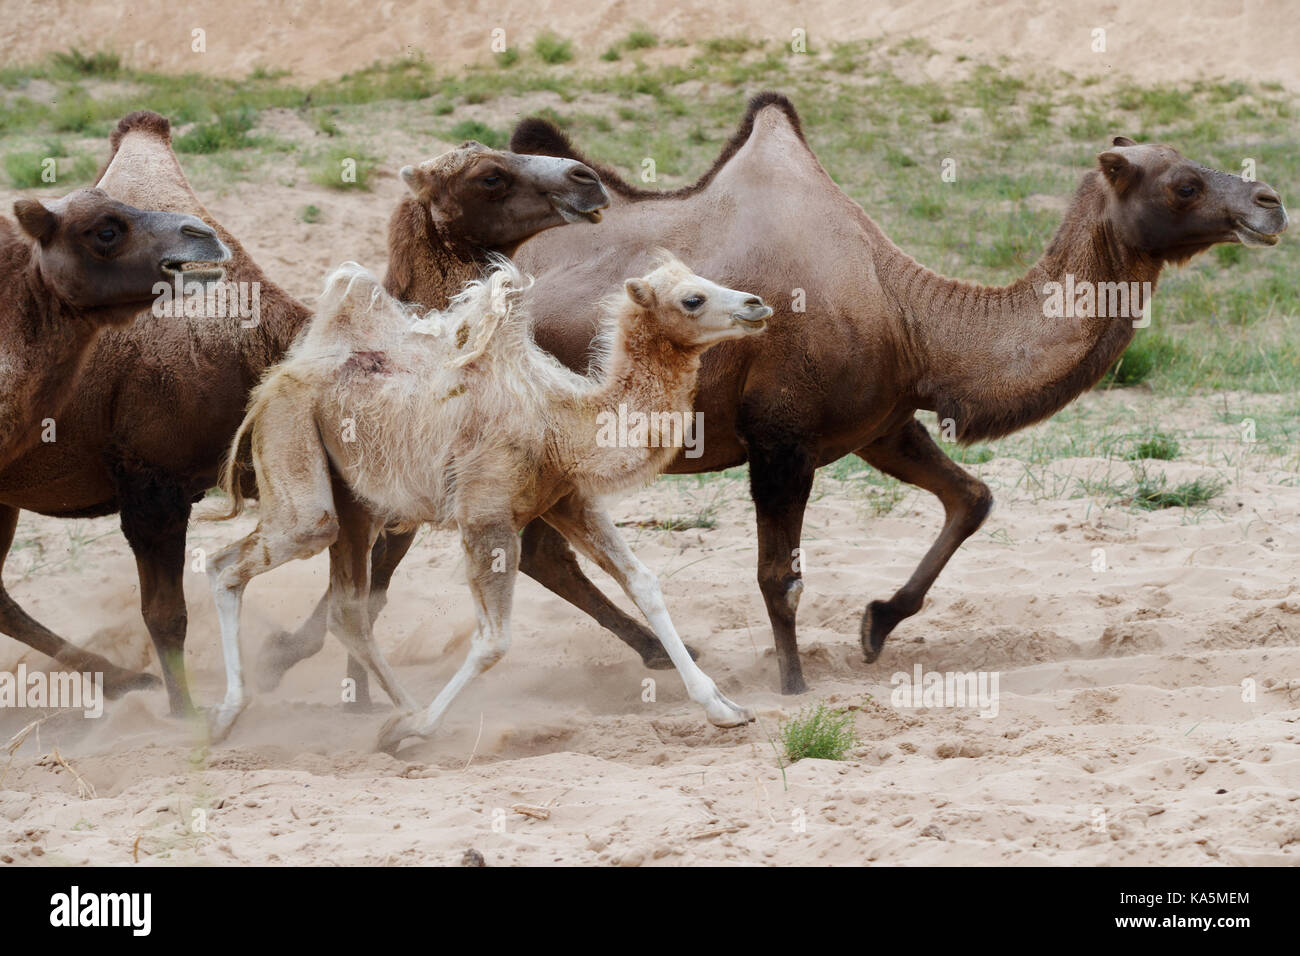 Double hump camels (Bactrian Camels) and the baby camel running - Stock Image